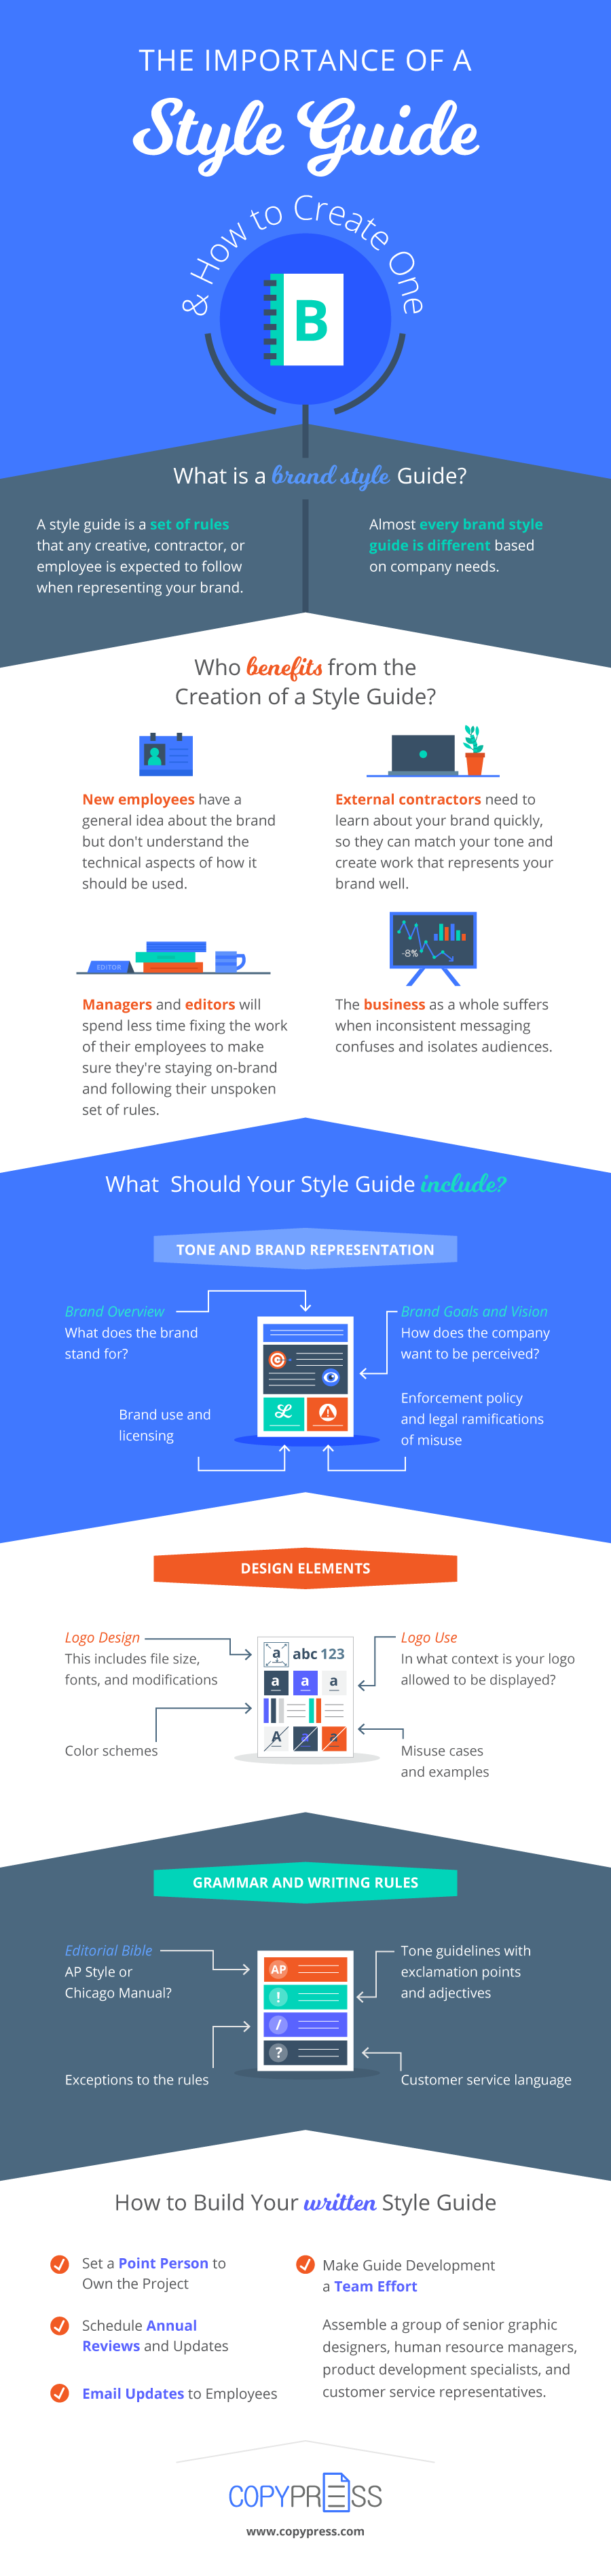 The Importance of a Style Guide for Branding - infographic